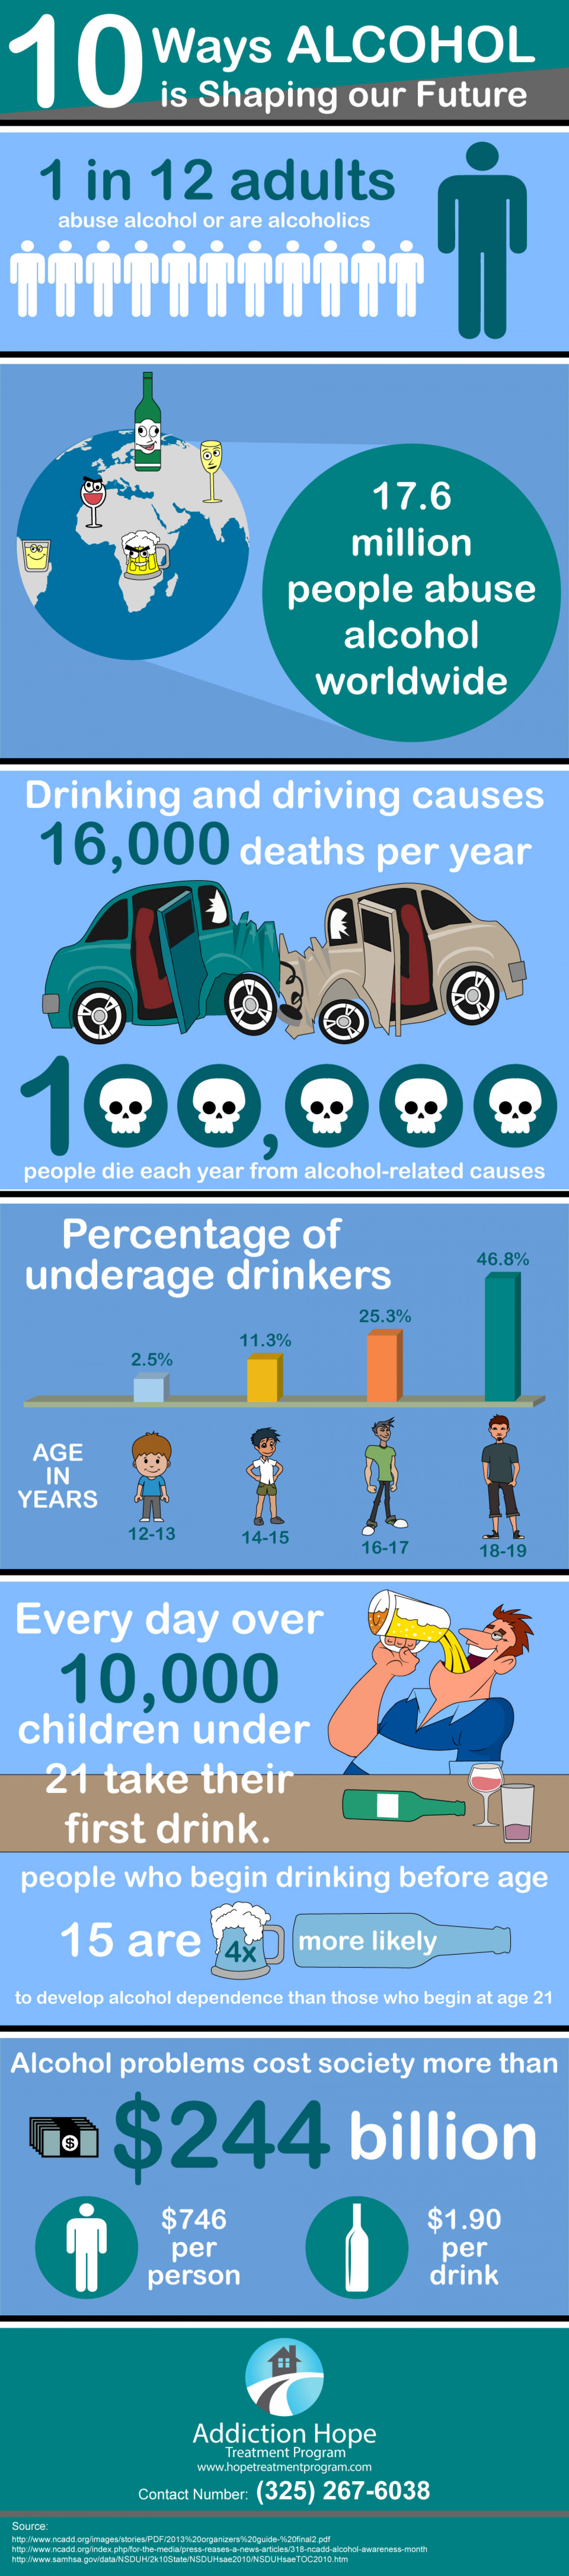 10 Ways Alcohol is Shaping our Future | Addiction Hope Treatment Program Infographic